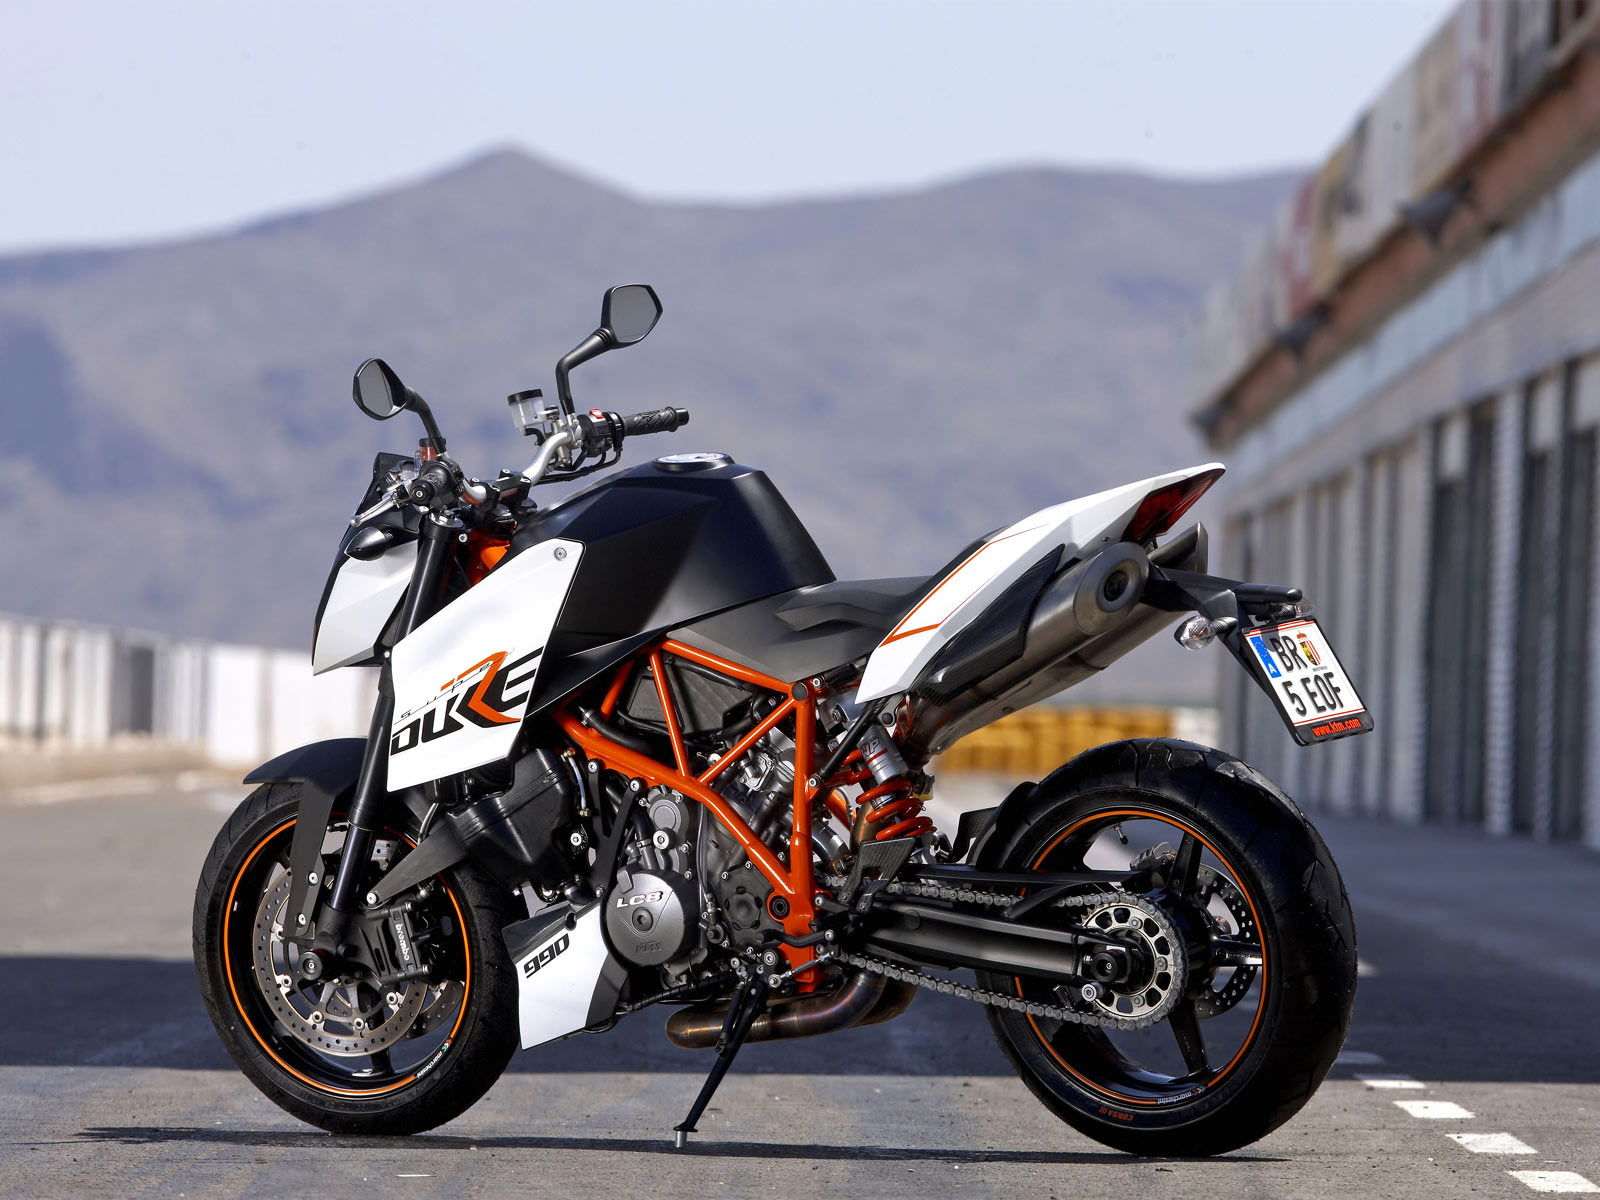 http://4.bp.blogspot.com/-qFNLufvALJo/TlSg07gP3OI/AAAAAAAAAqs/pknPn9sxAMs/s1600/KTM_990_Super_Duke_R_2009_motorcycle-desktop-wallpaper_02.jpg